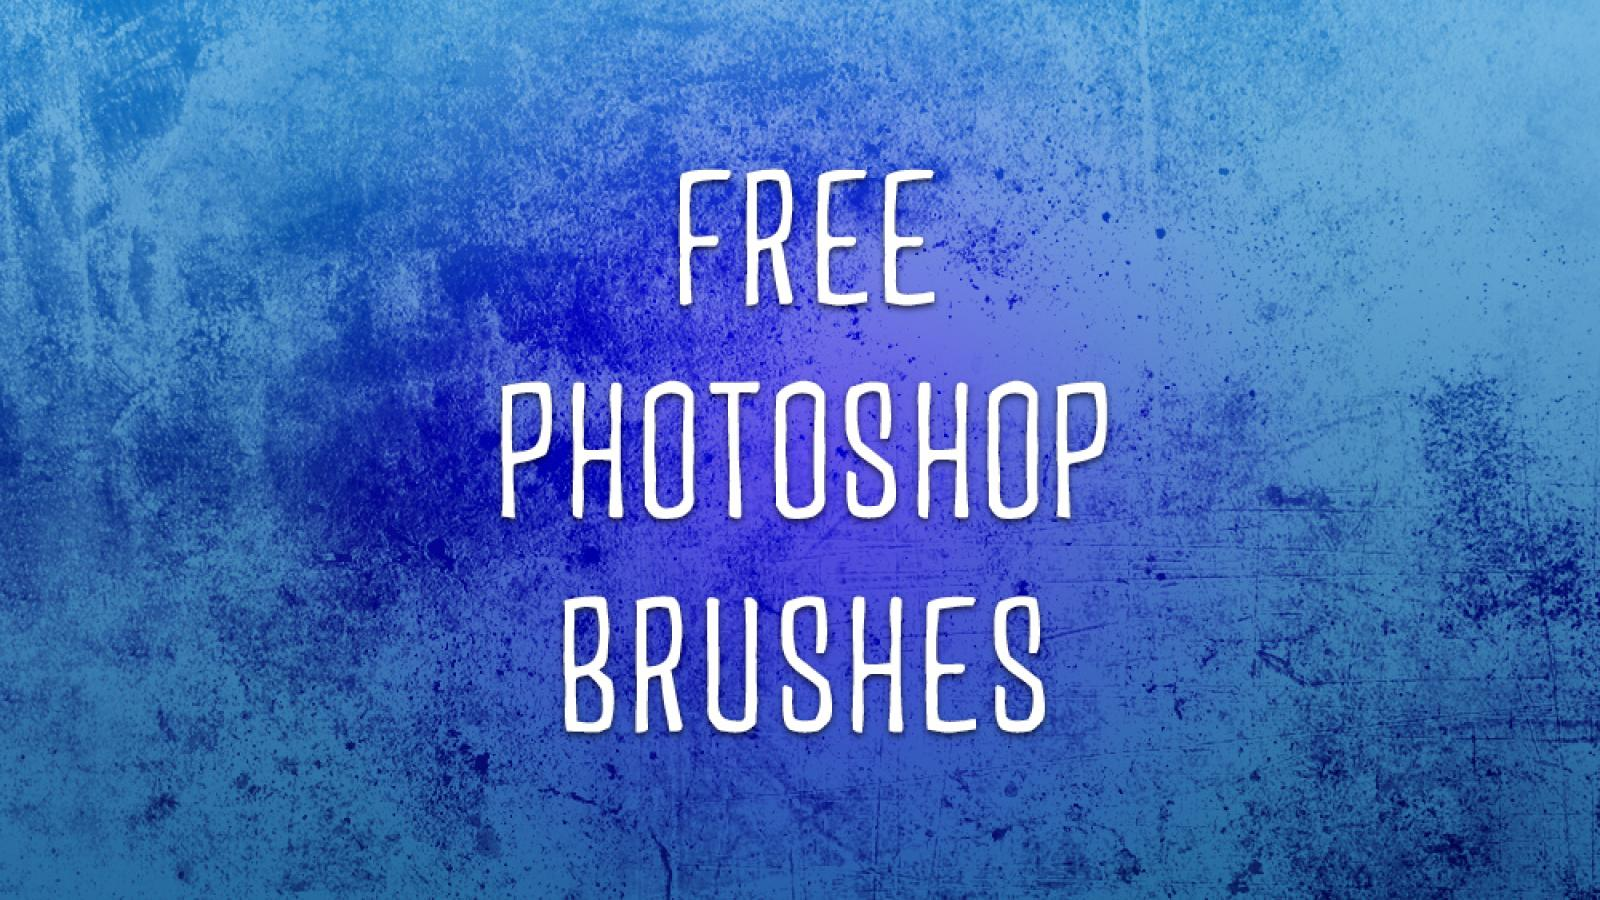 Great Photoshop Brushes Freebies